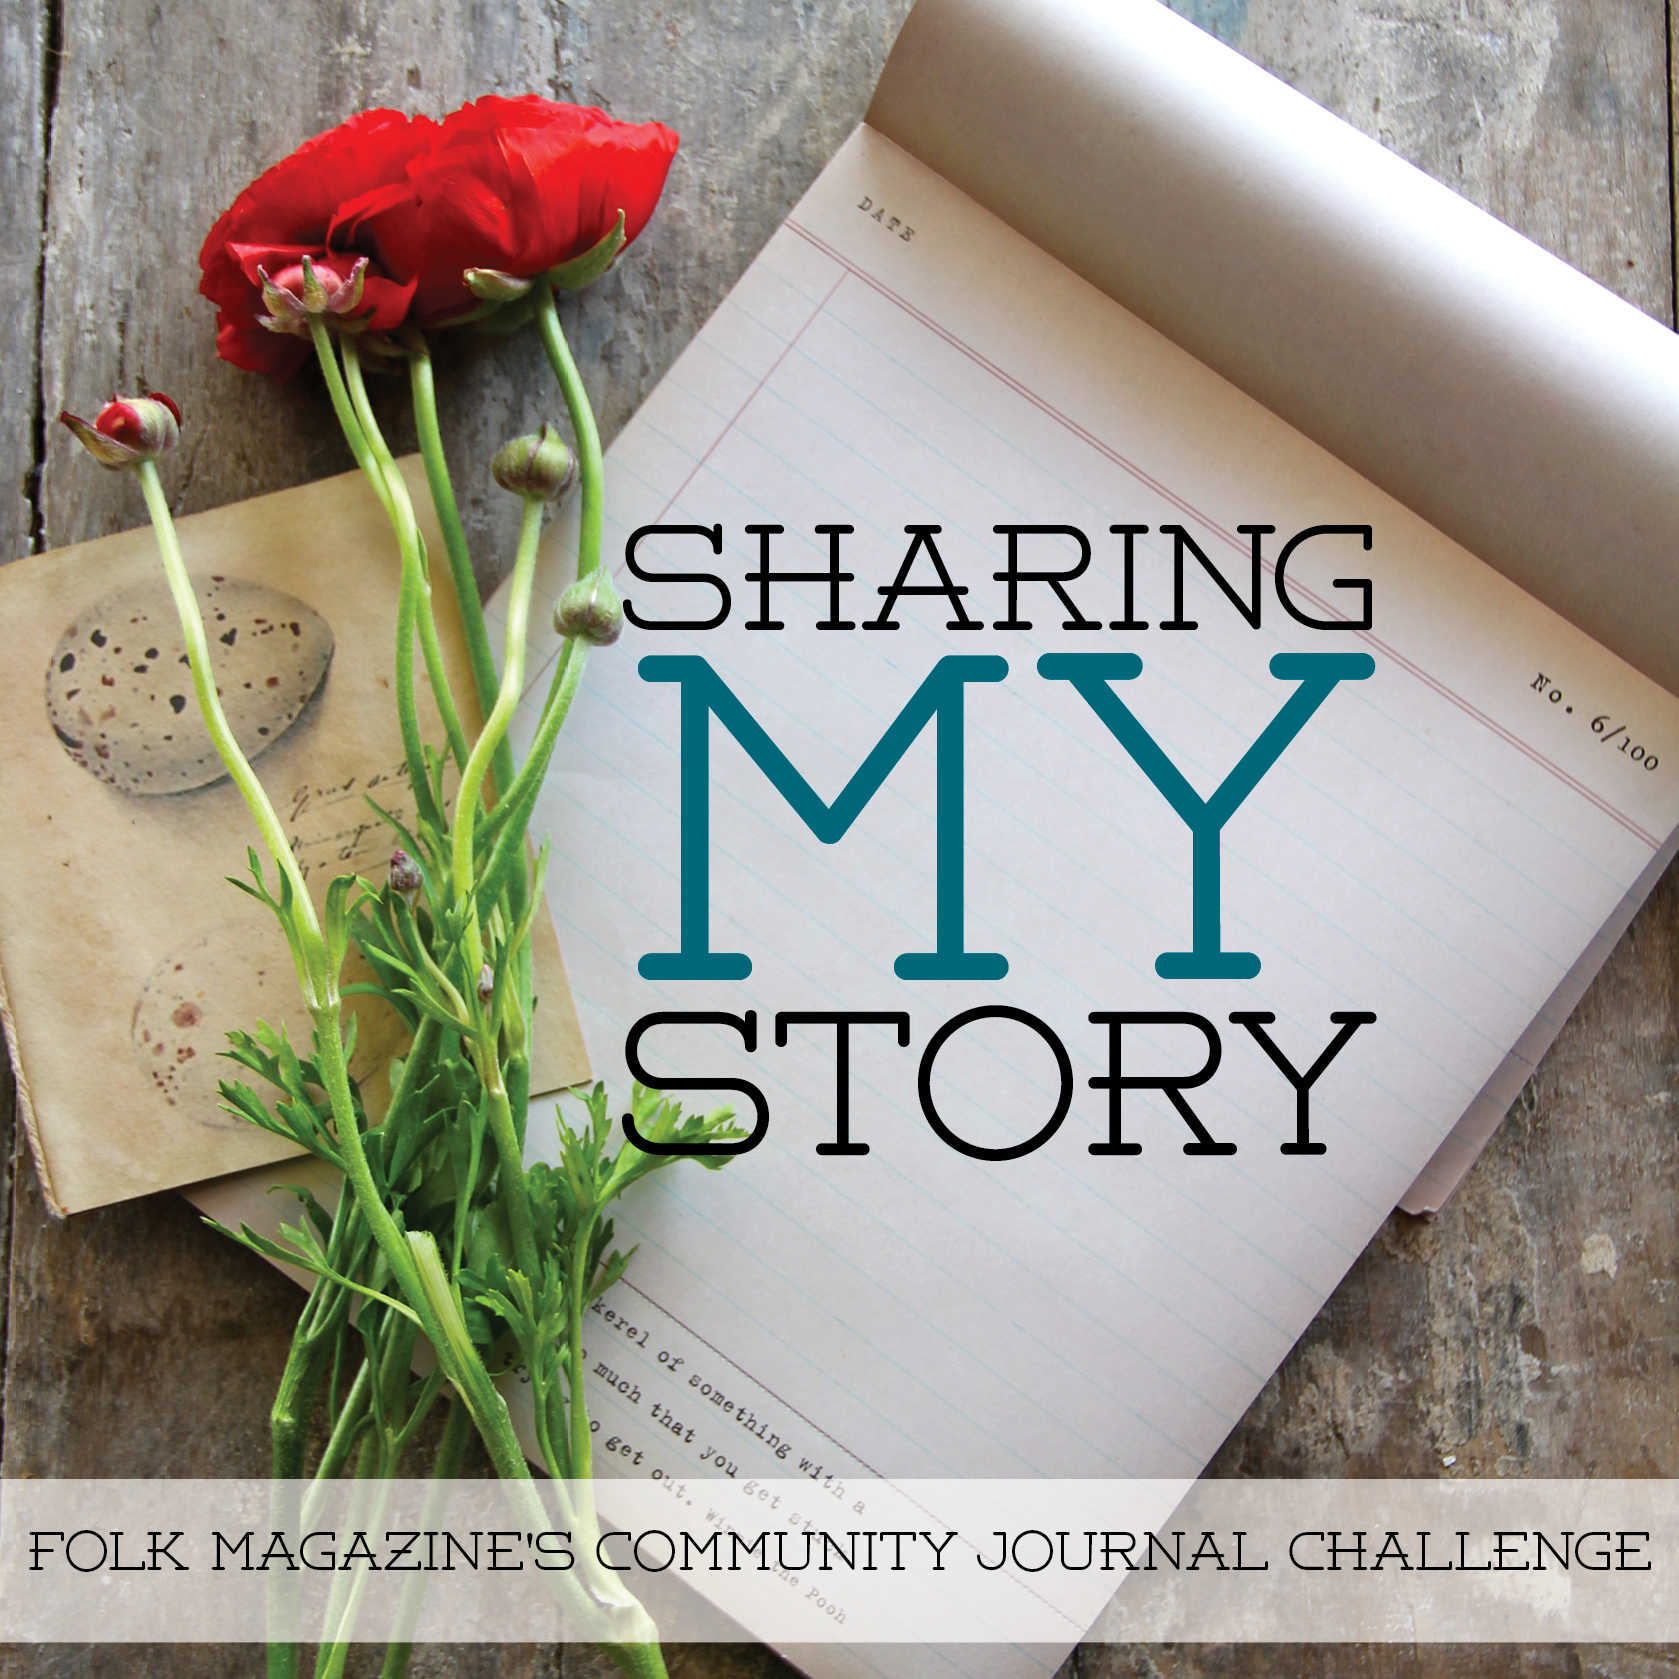 FOLK-sharemystory1